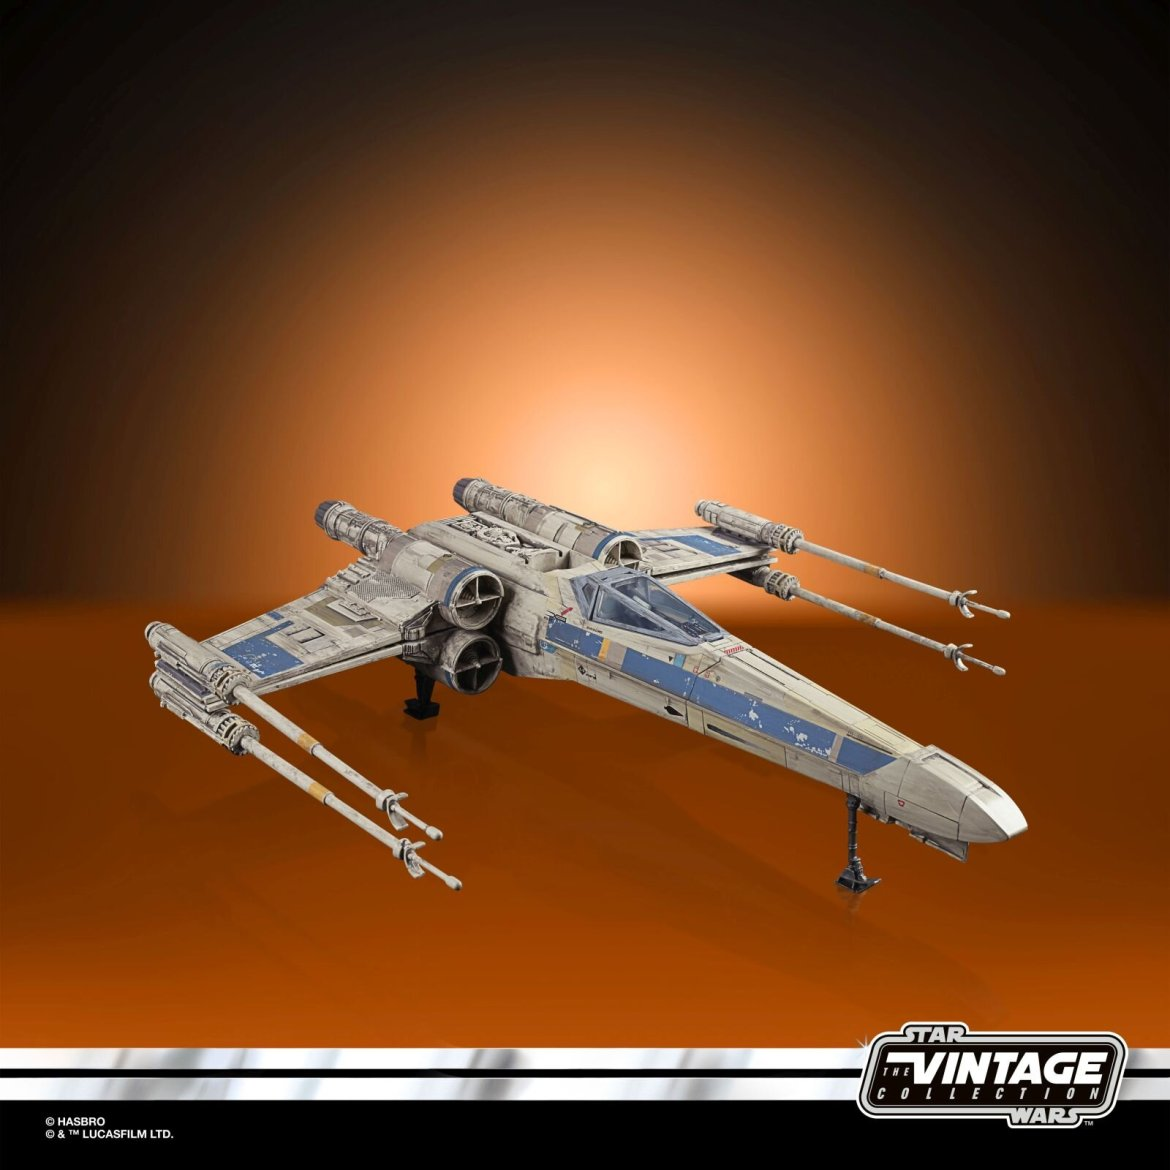 STAR WARS THE VINTAGE COLLECTION ANTOC MERRICK'S X-WING FIGHTER Vehicle and Figure - oop 3.jpg